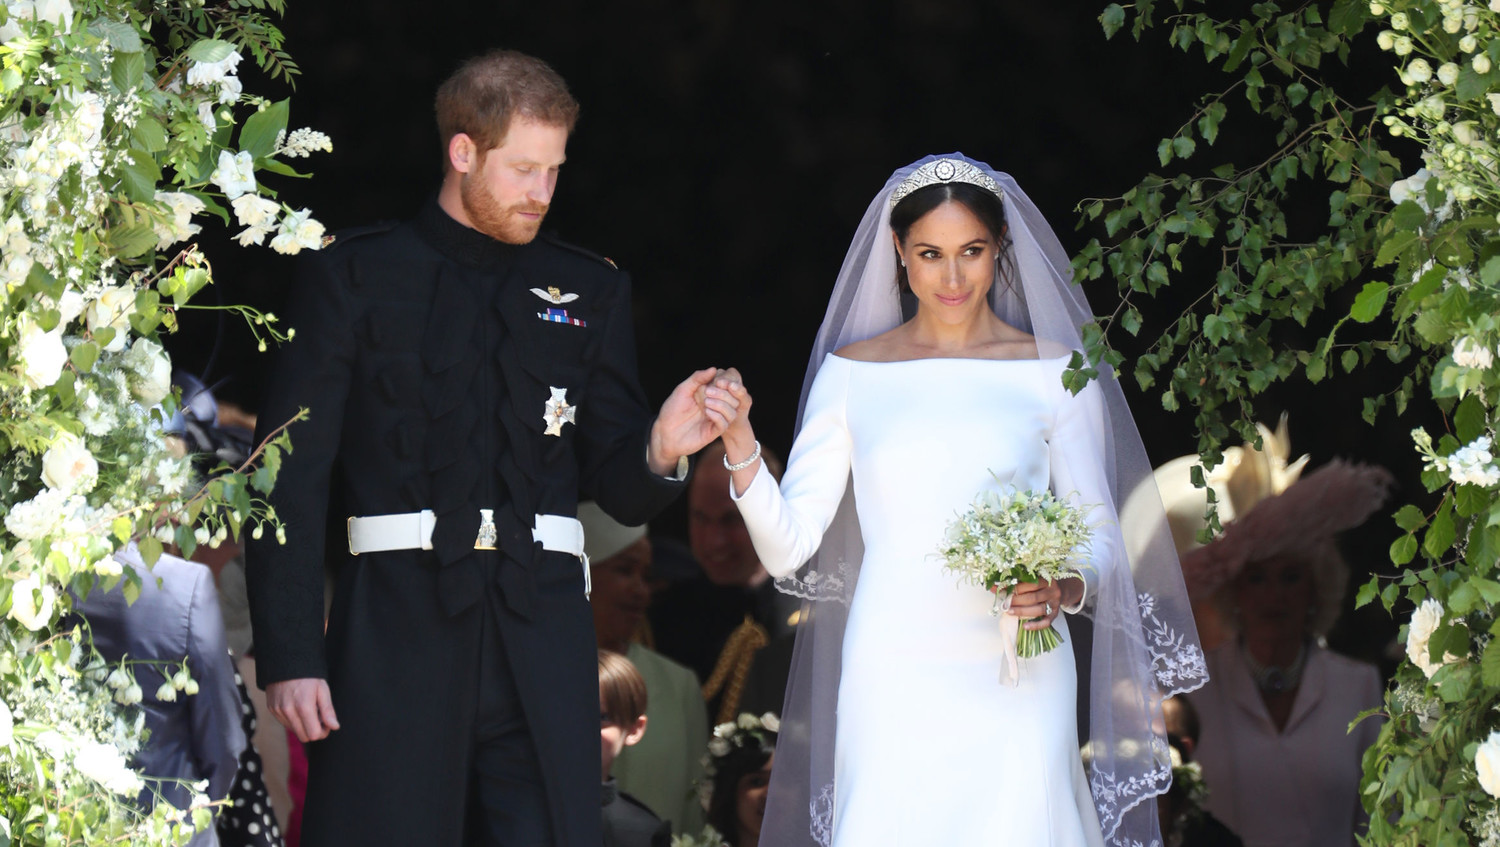 Wedding Of Prince Harry And Meghan Markle.Meghan Markle S Wedding Dress Is About To Go On Display Martha